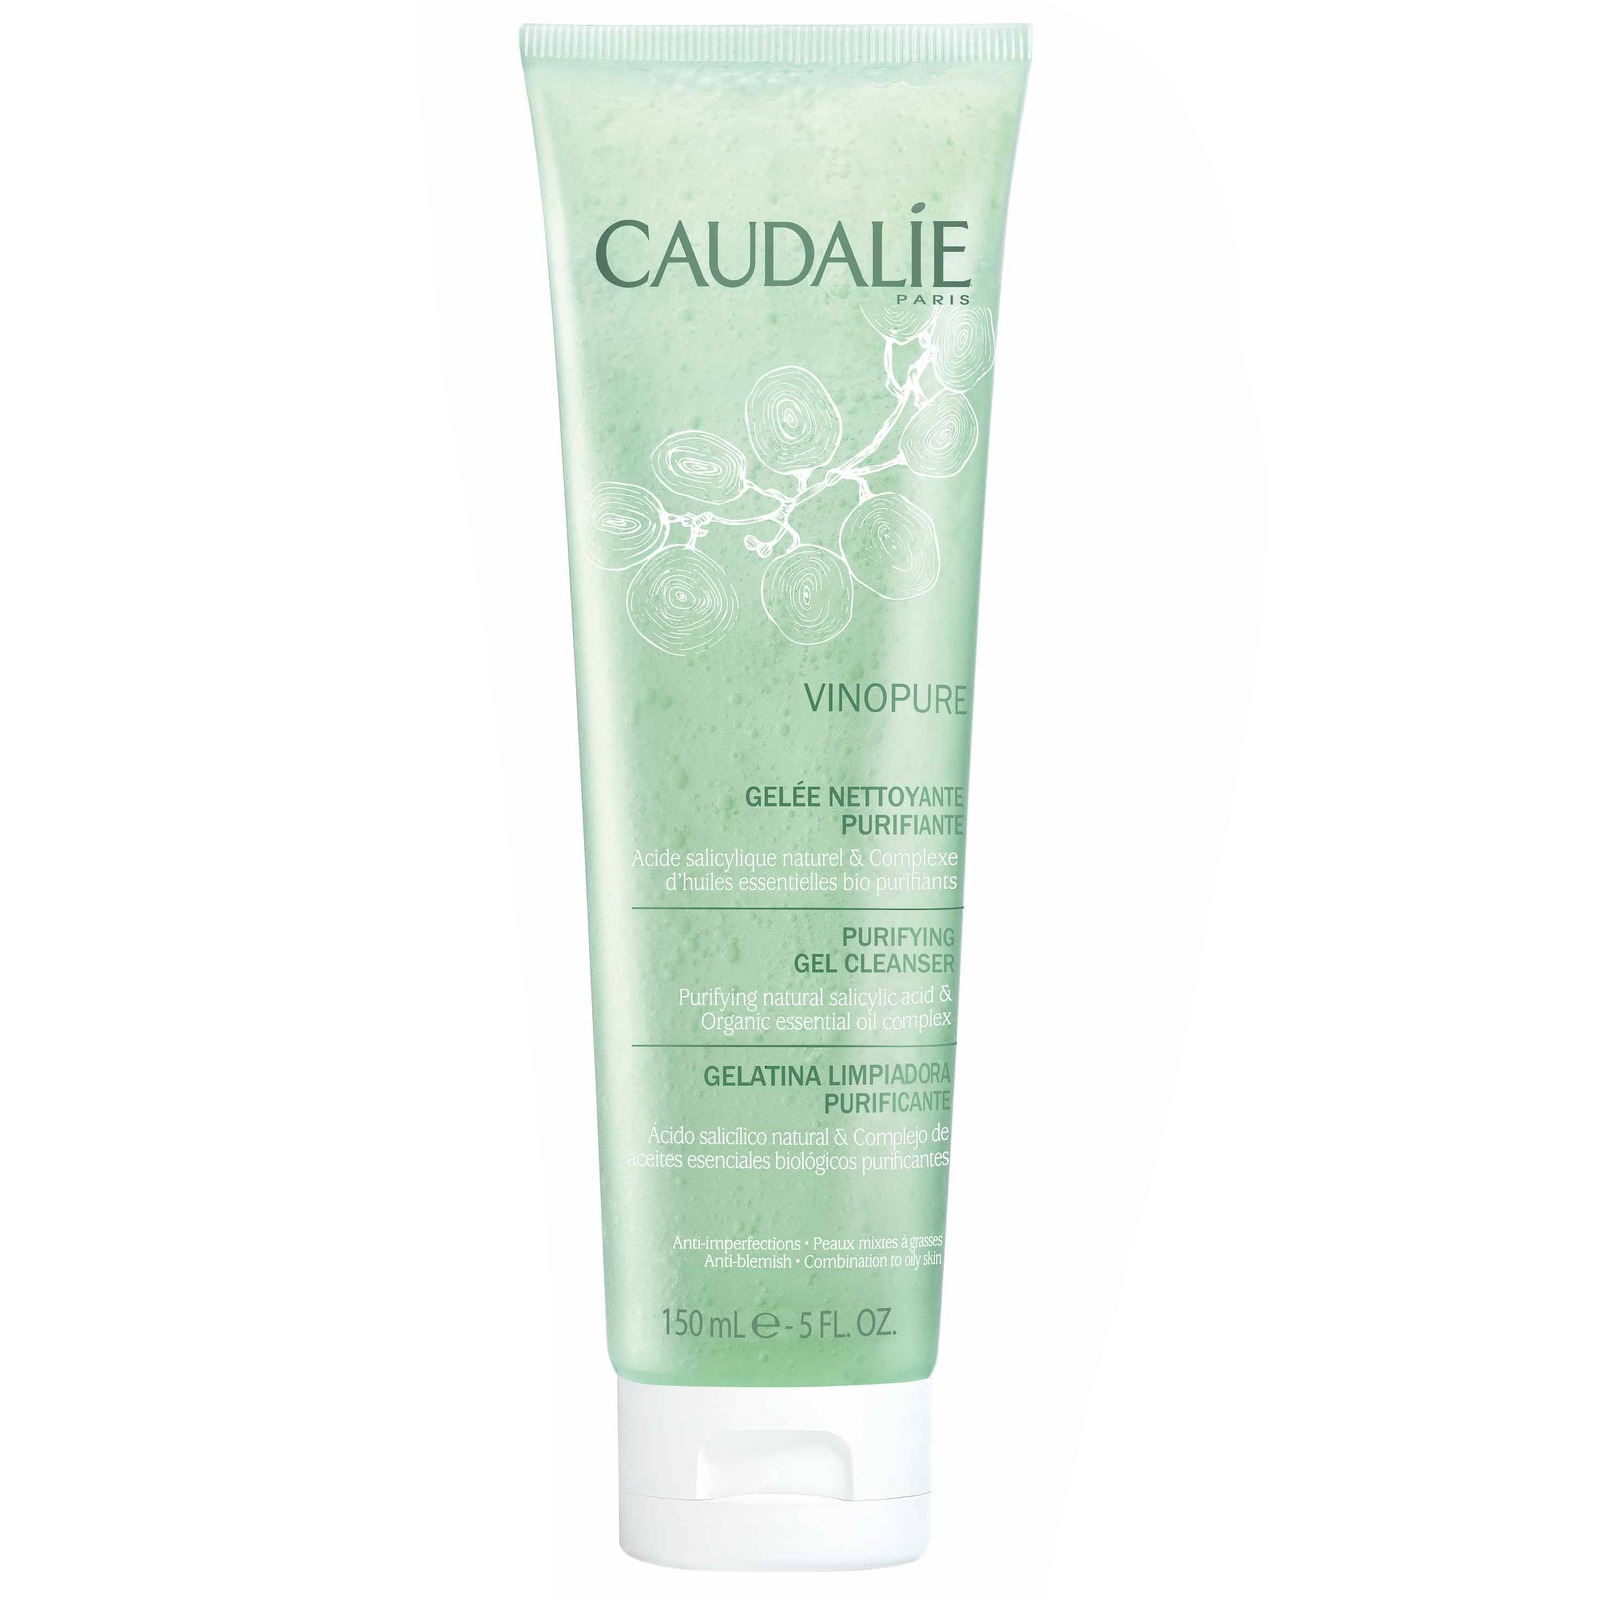 Caudalie Cleansers & Toners Vinopure Purifying Gel Cleanser 150ml